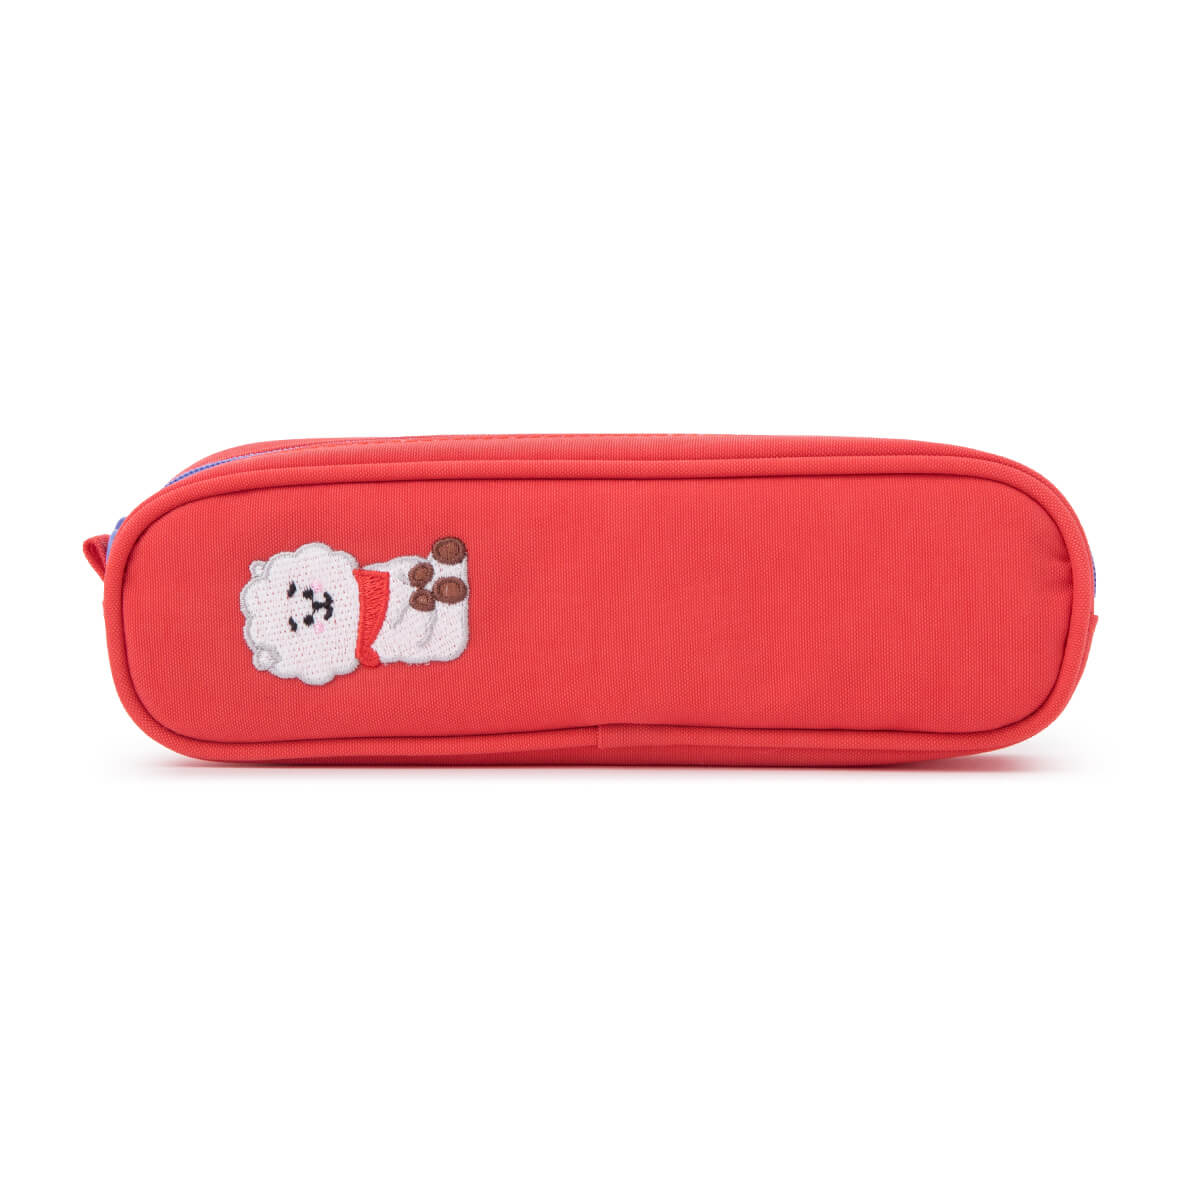 BT21 RJ Embroidered Slim Pencil Case